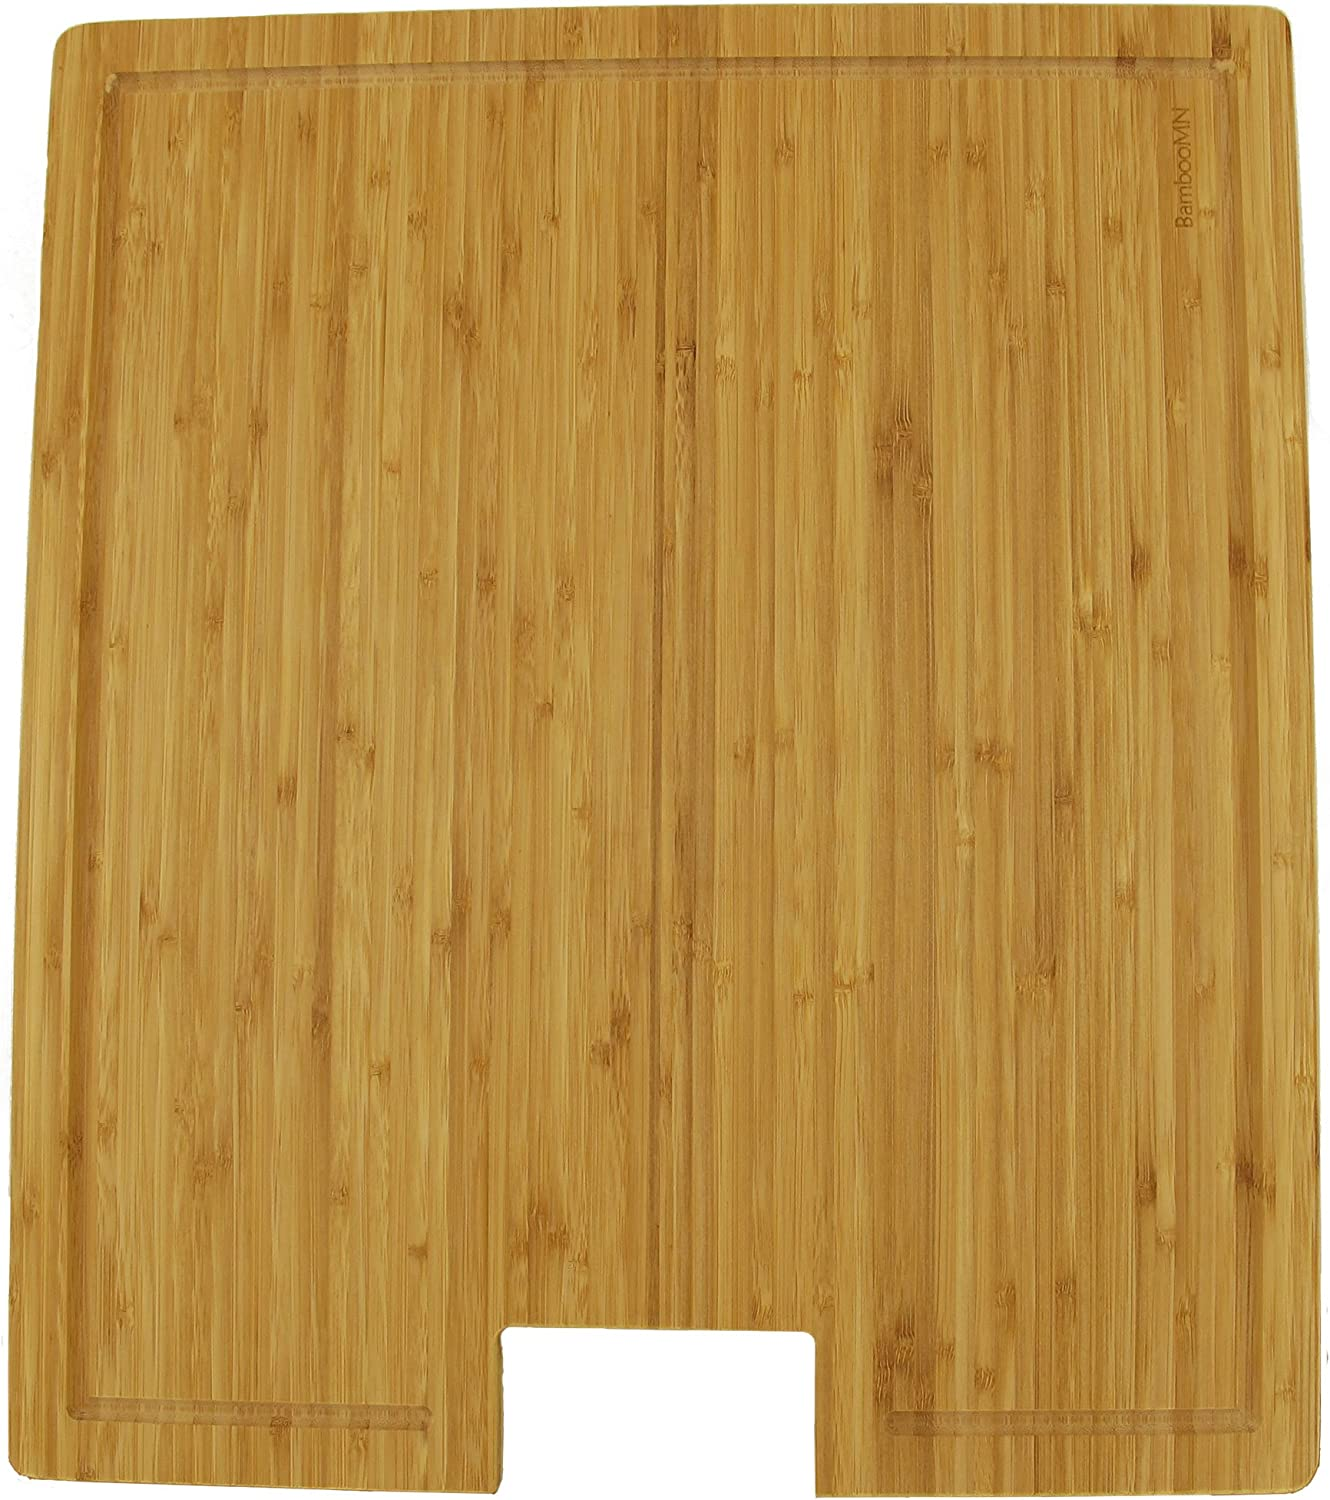 BambooMN Brand Bamboo Griddle Cover Cutting Board for Viking Cooktops, greenical Griddle Cover, Large (19 X 16.38  X 0.75 )